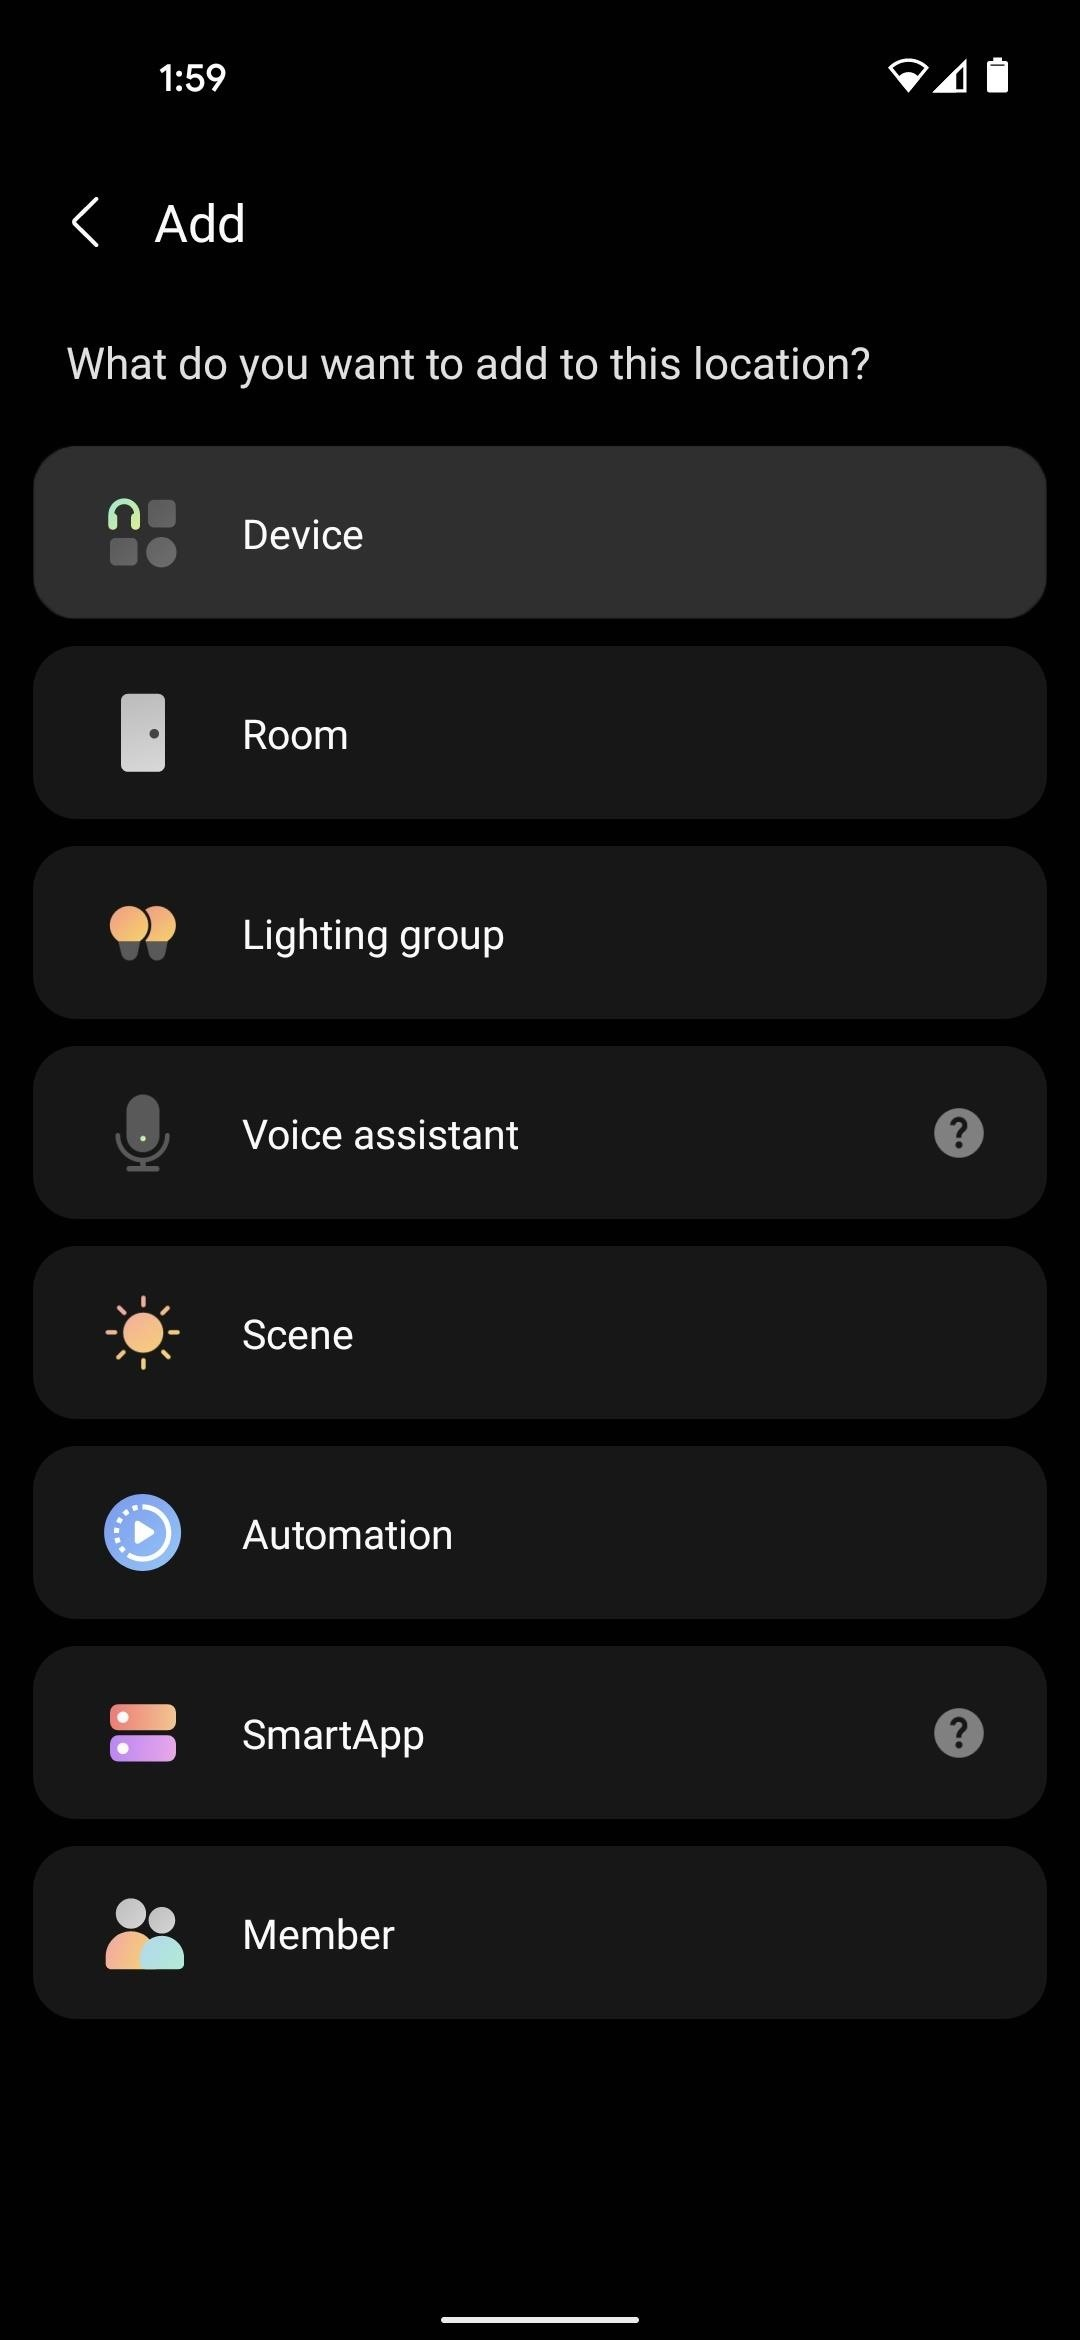 Using Nest cameras and thermostats with SmartThings for next-level home automation